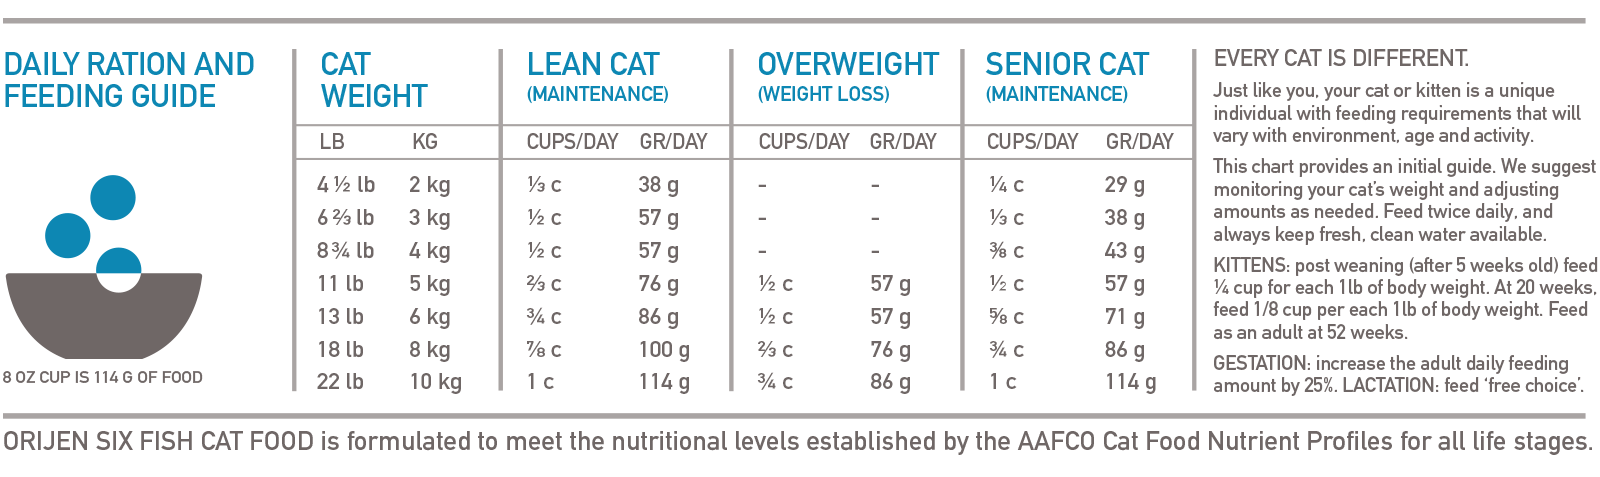 ORIJEN Six Fish Biologically Appropriate Cat Food Feeding Chart